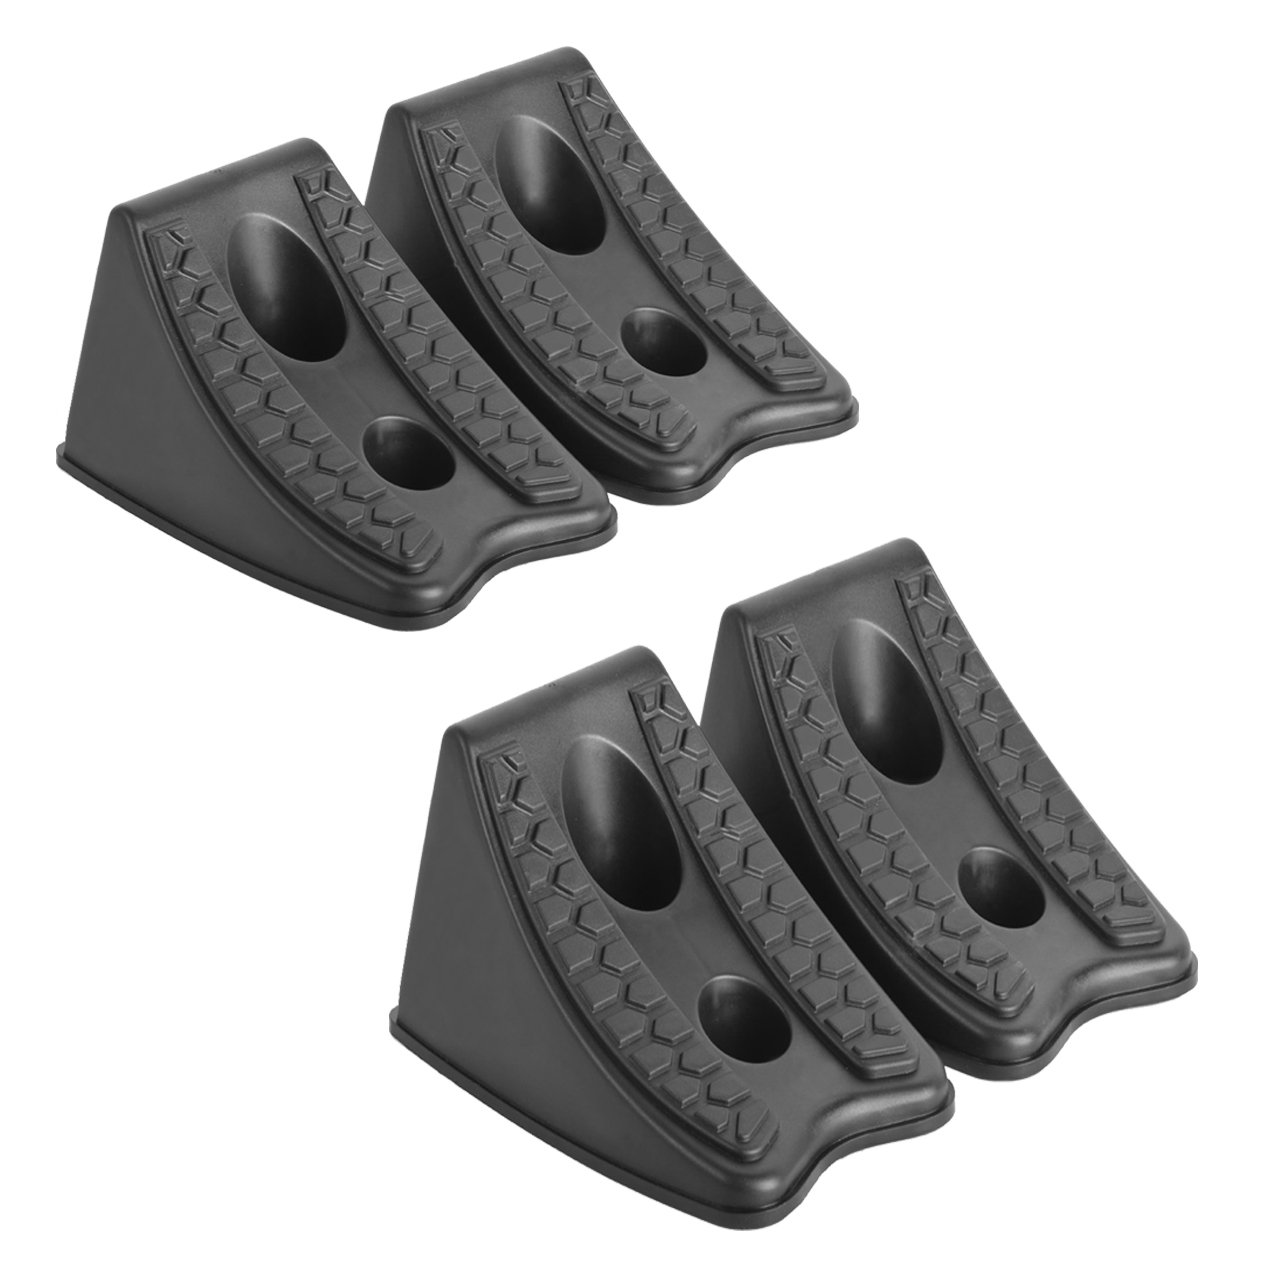 DEDC Heavy Duty Wheel Chocks for Caravan Car Wheel Stoppers Tire Chocks 4 Pack, RV Trailer ATV Truck Tire Wheel Blocks by DEDC